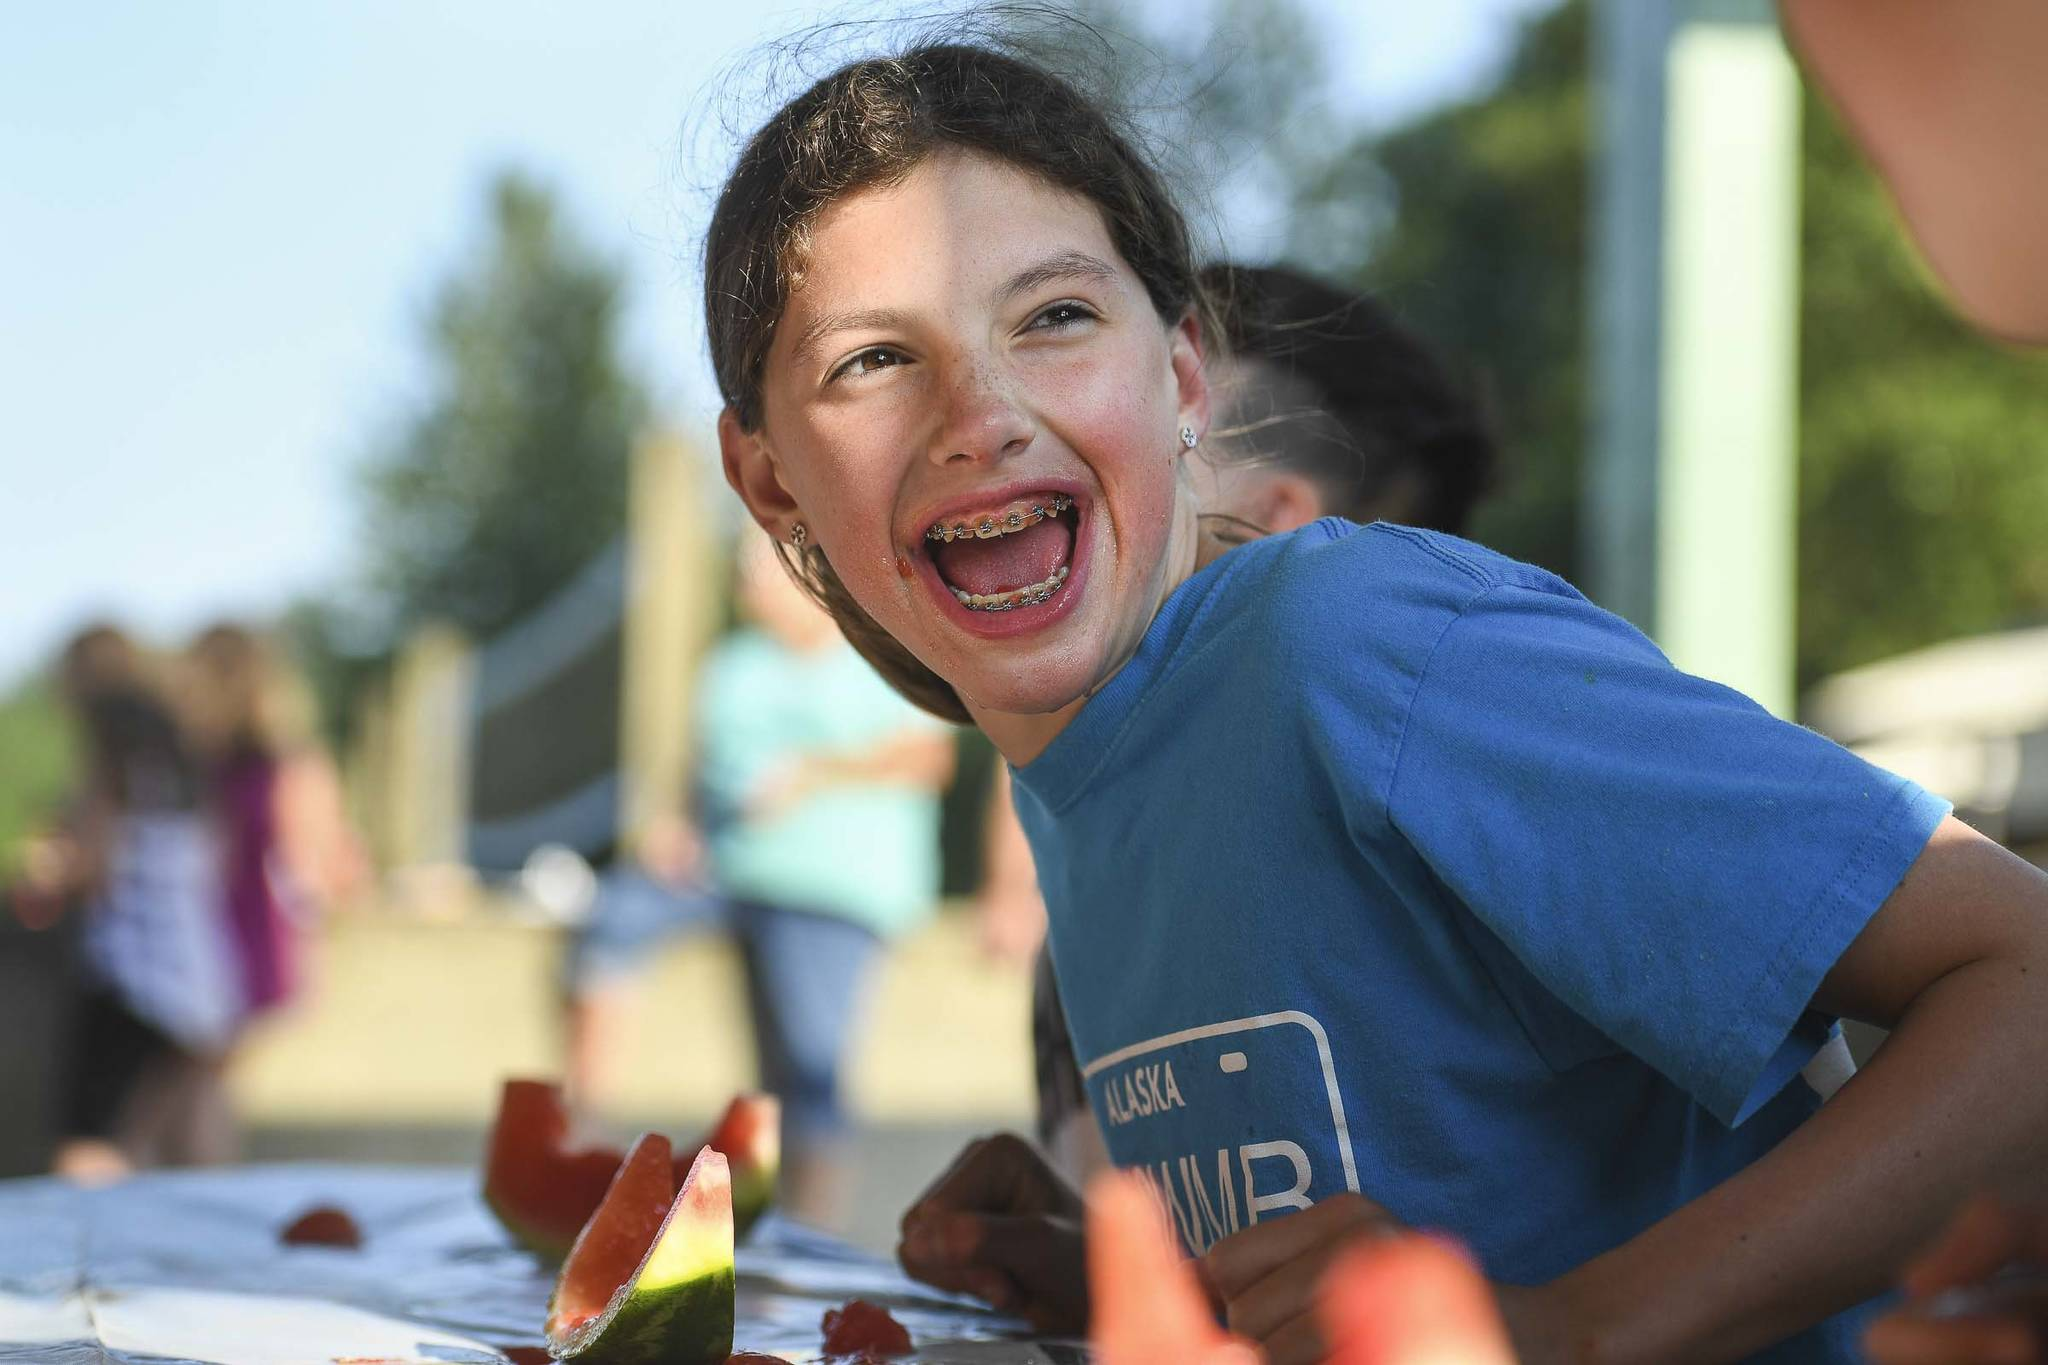 Emma Fellman, 12, celebrates her watermelon eating contest win for her age group during a community picnic sponsored by the Douglas Fourth of July Committee and Capital City Fire/Rescue at Sandy Beach on Wednesday, July 3, 2019. (Michael Penn | Juneau Empire)